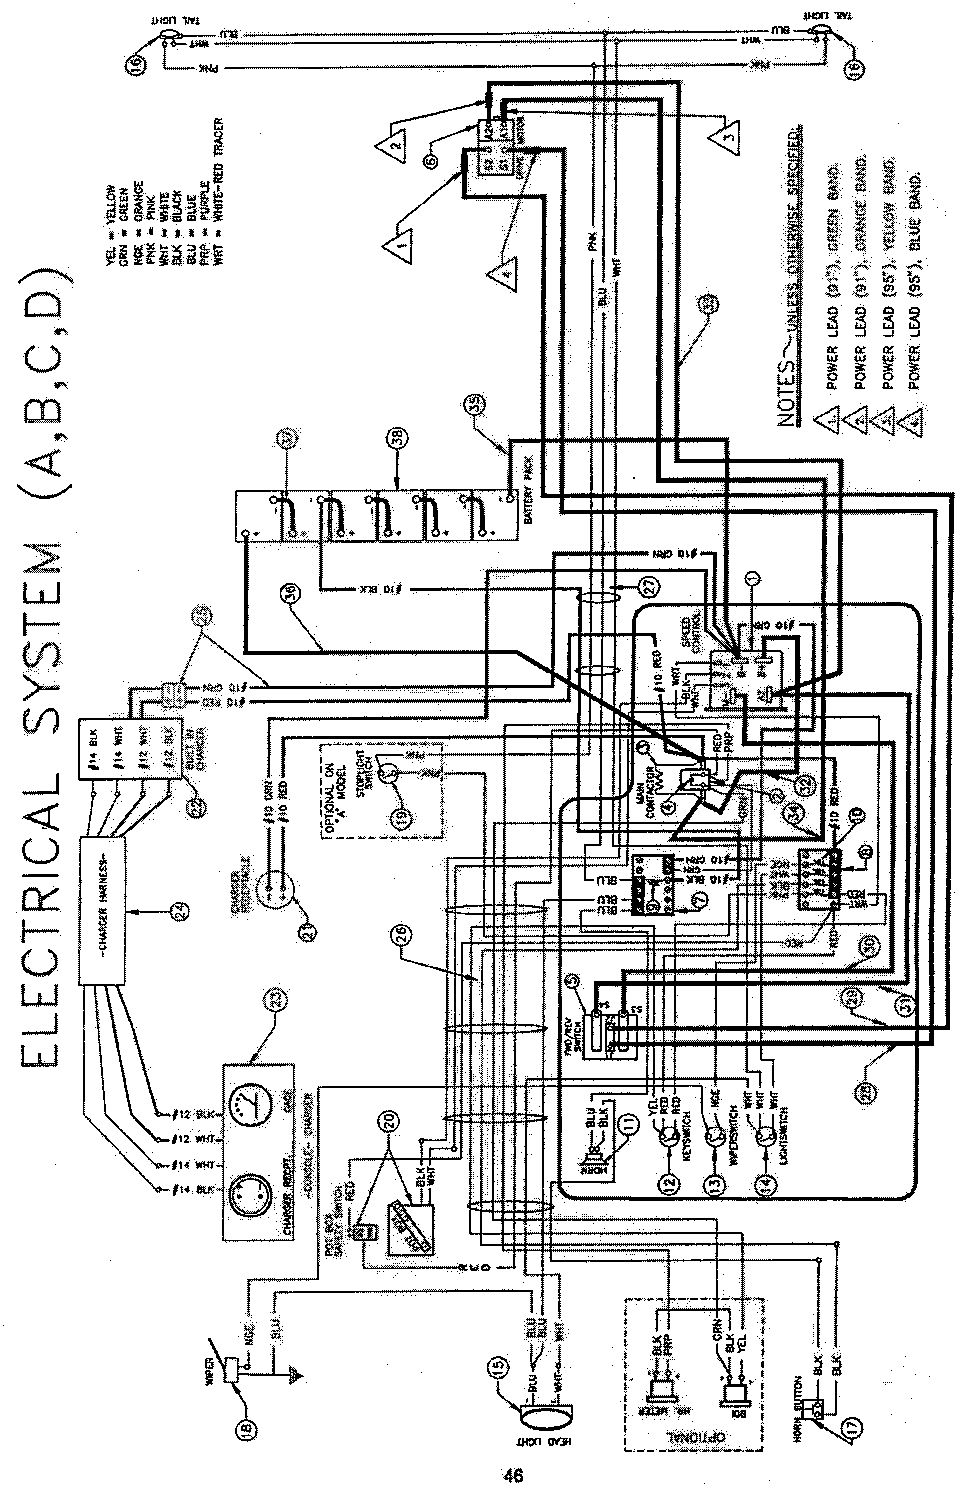 Nordskog280_92plus vintagegolfcartparts com westinghouse golf cart wiring diagram at bakdesigns.co